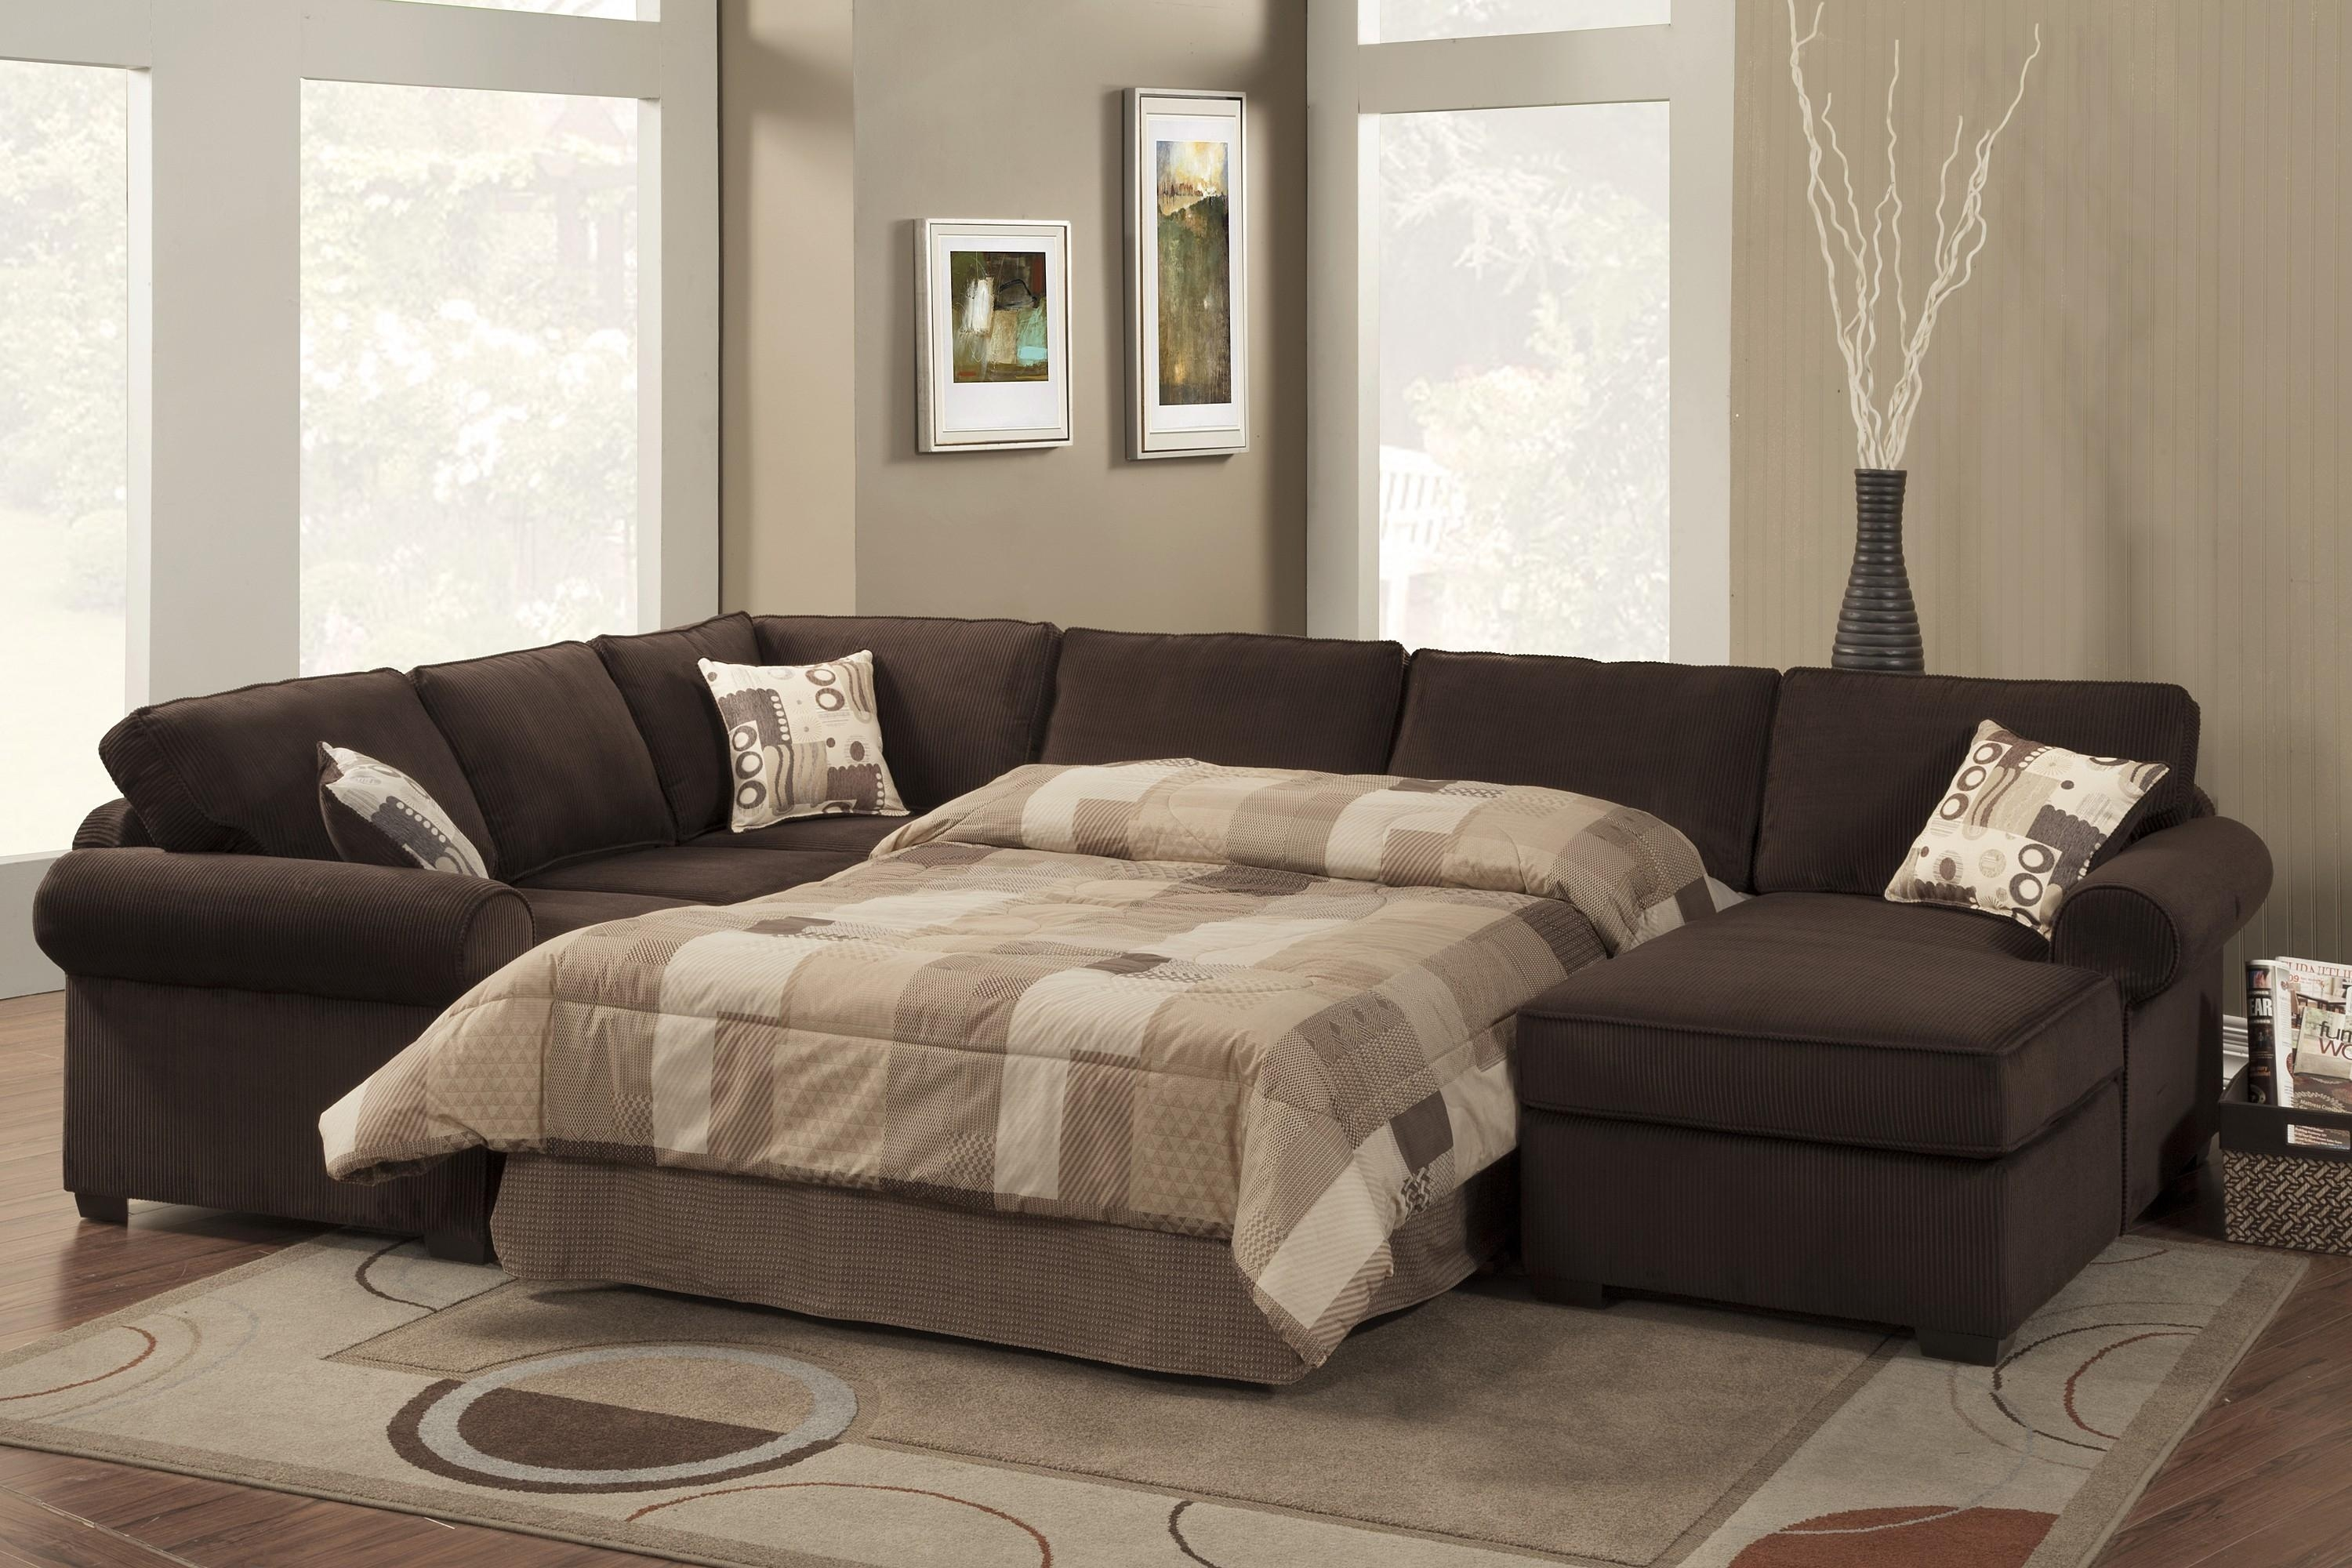 Furniture: Ikea Sleeper Sofa | Sleeper Sectional Sofa Ikea For Sectional Sleepers (View 6 of 20)